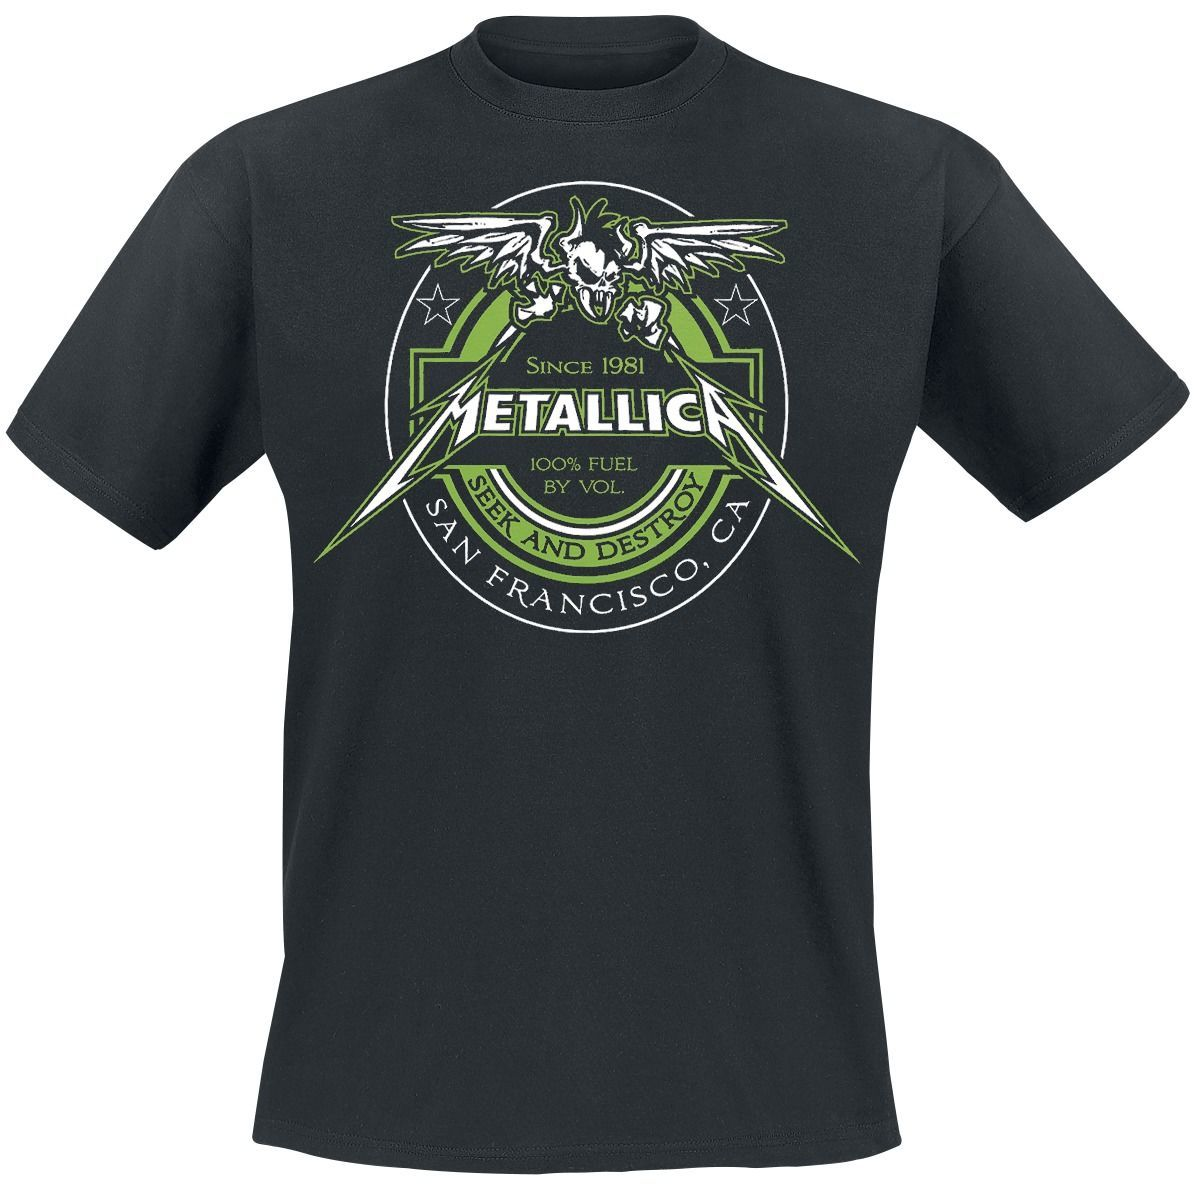 METALLICA 100% Fuel - Seek And Destroy T-Shirt.jpg